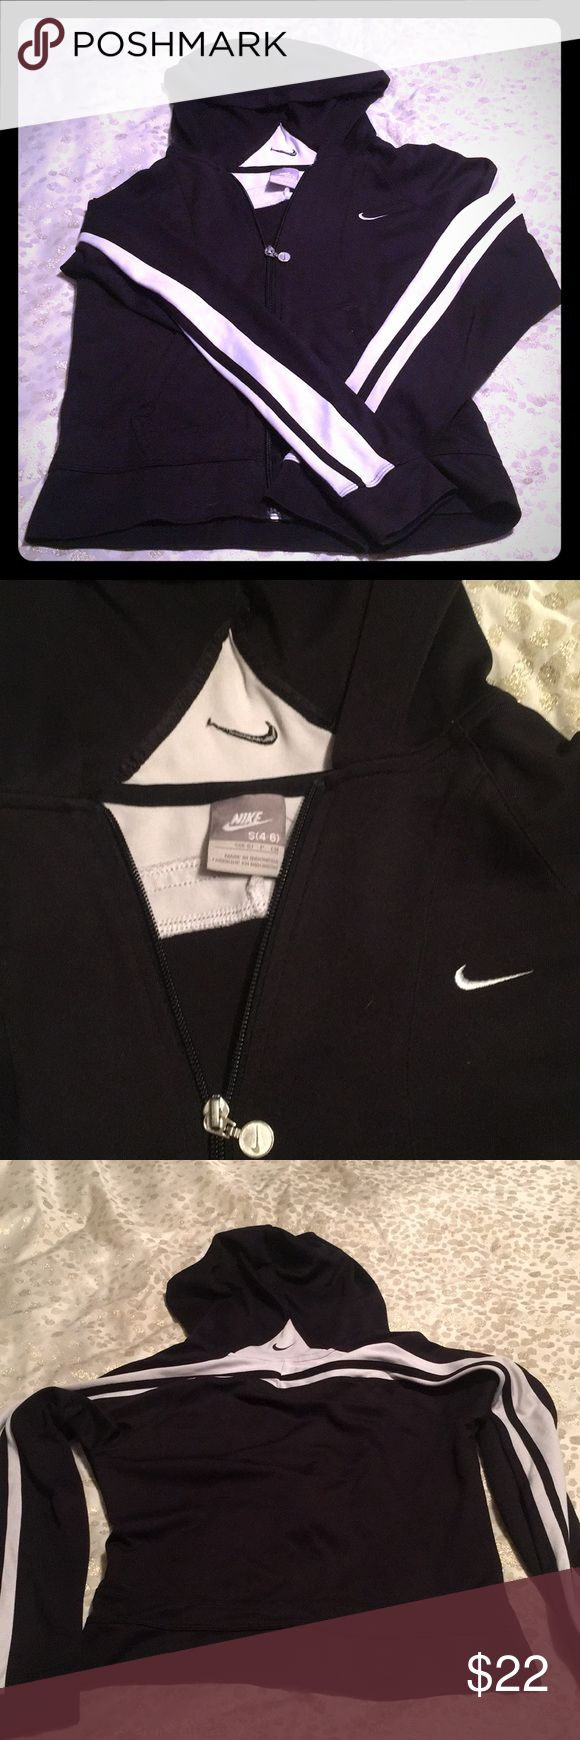 Nike zip up jacket! Women's small nike zip up light jacket! Black and white!  Great for a light jacket for the gym!! Nike Jackets & Coats